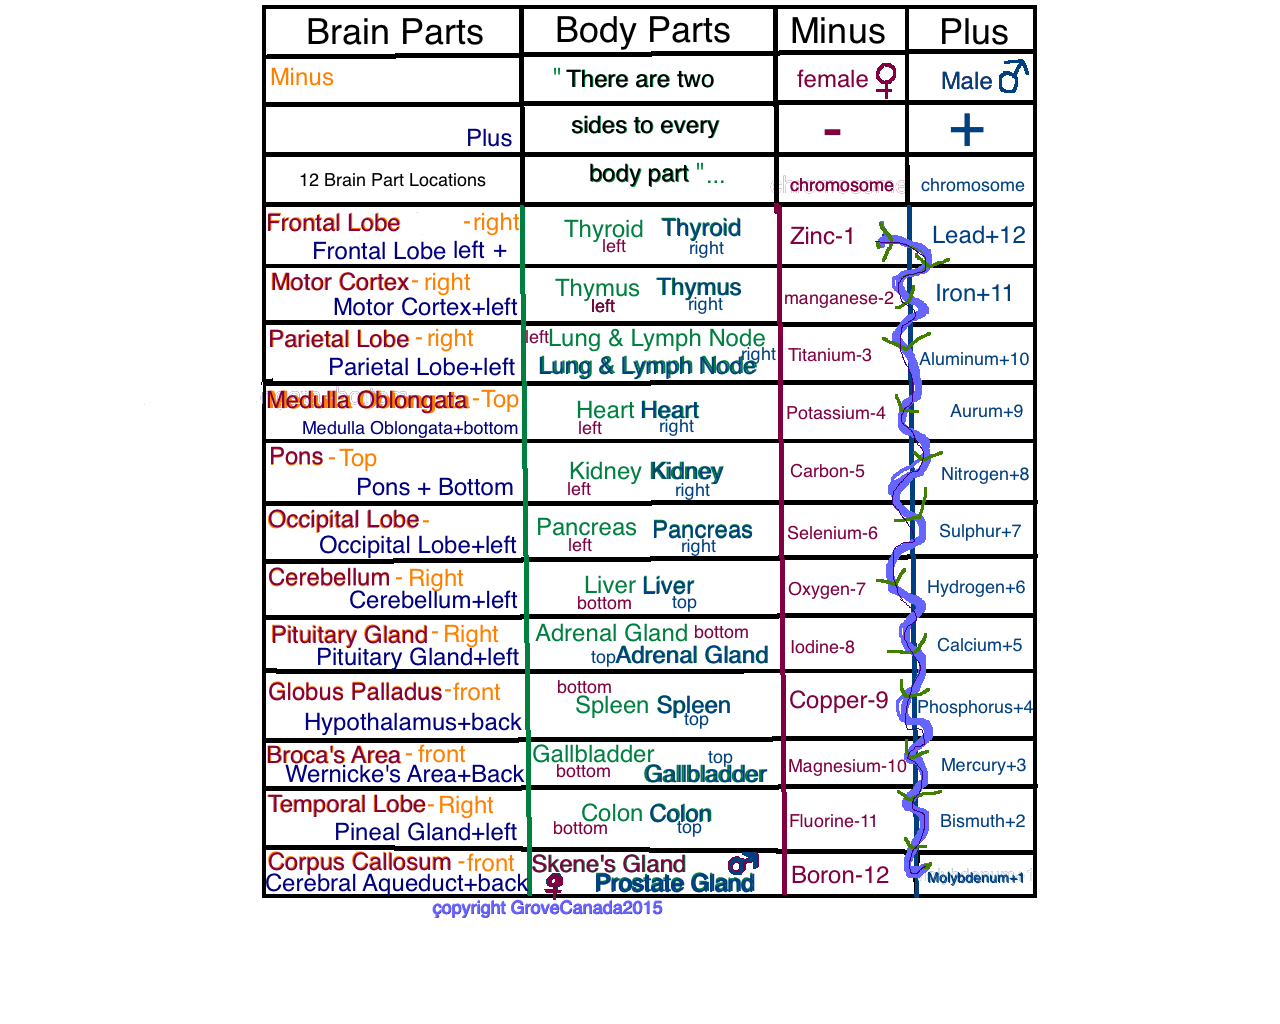 Grove Brain 'n Body Part Chart